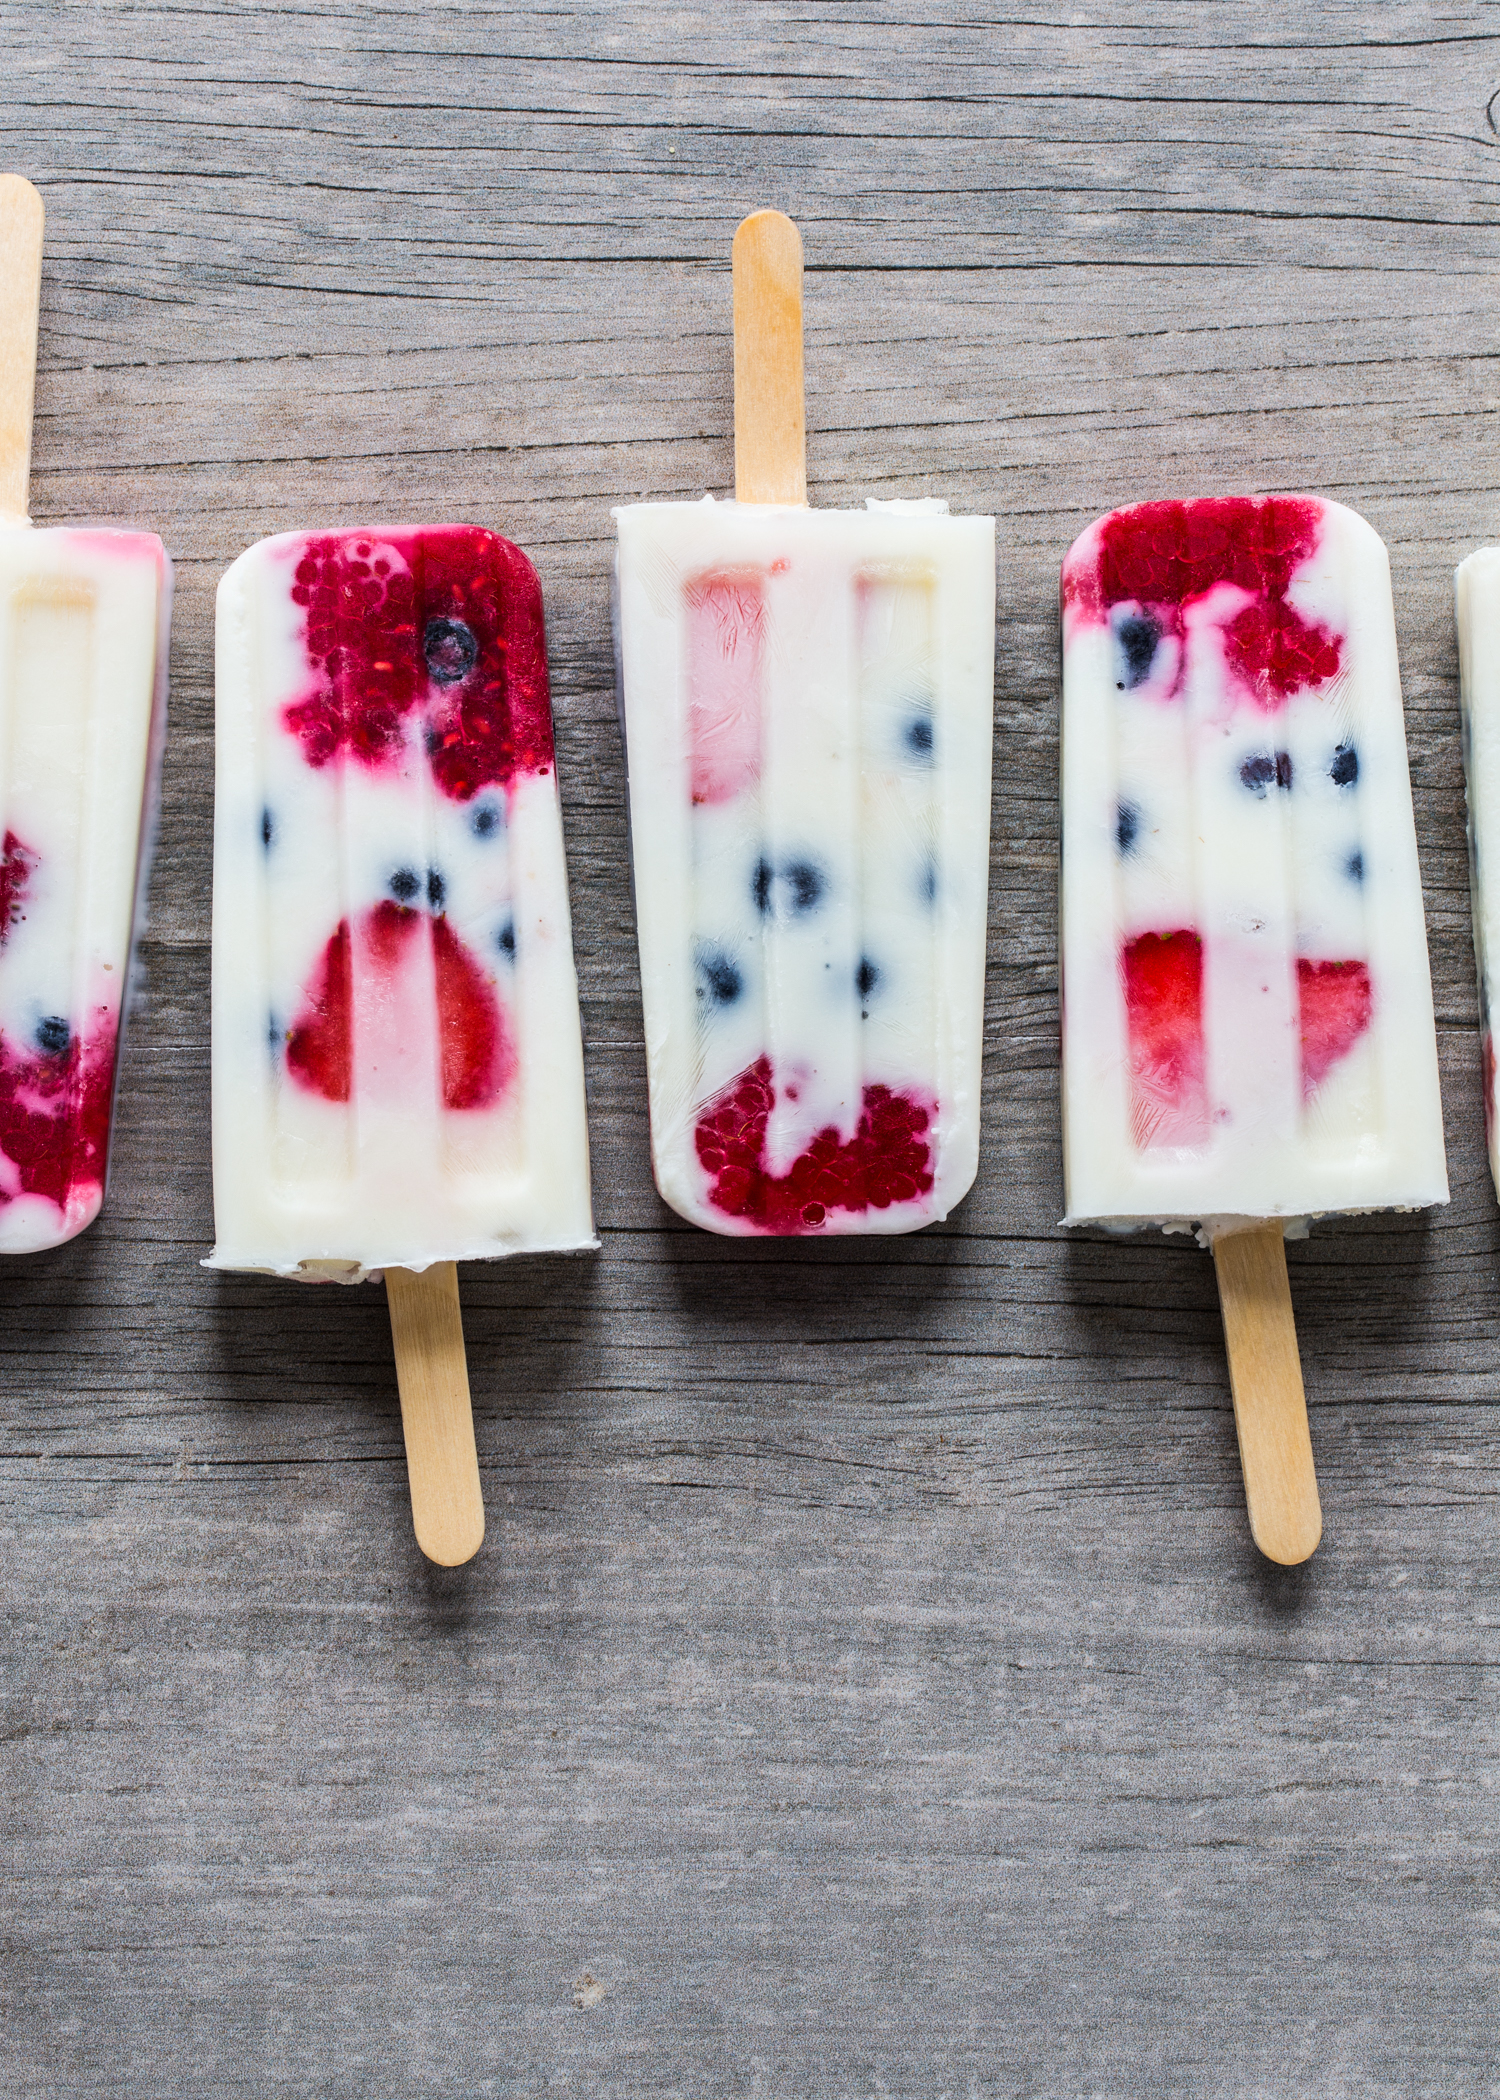 Creamy Vanilla Berry Popsicles made with milk, yogurt and fresh berries